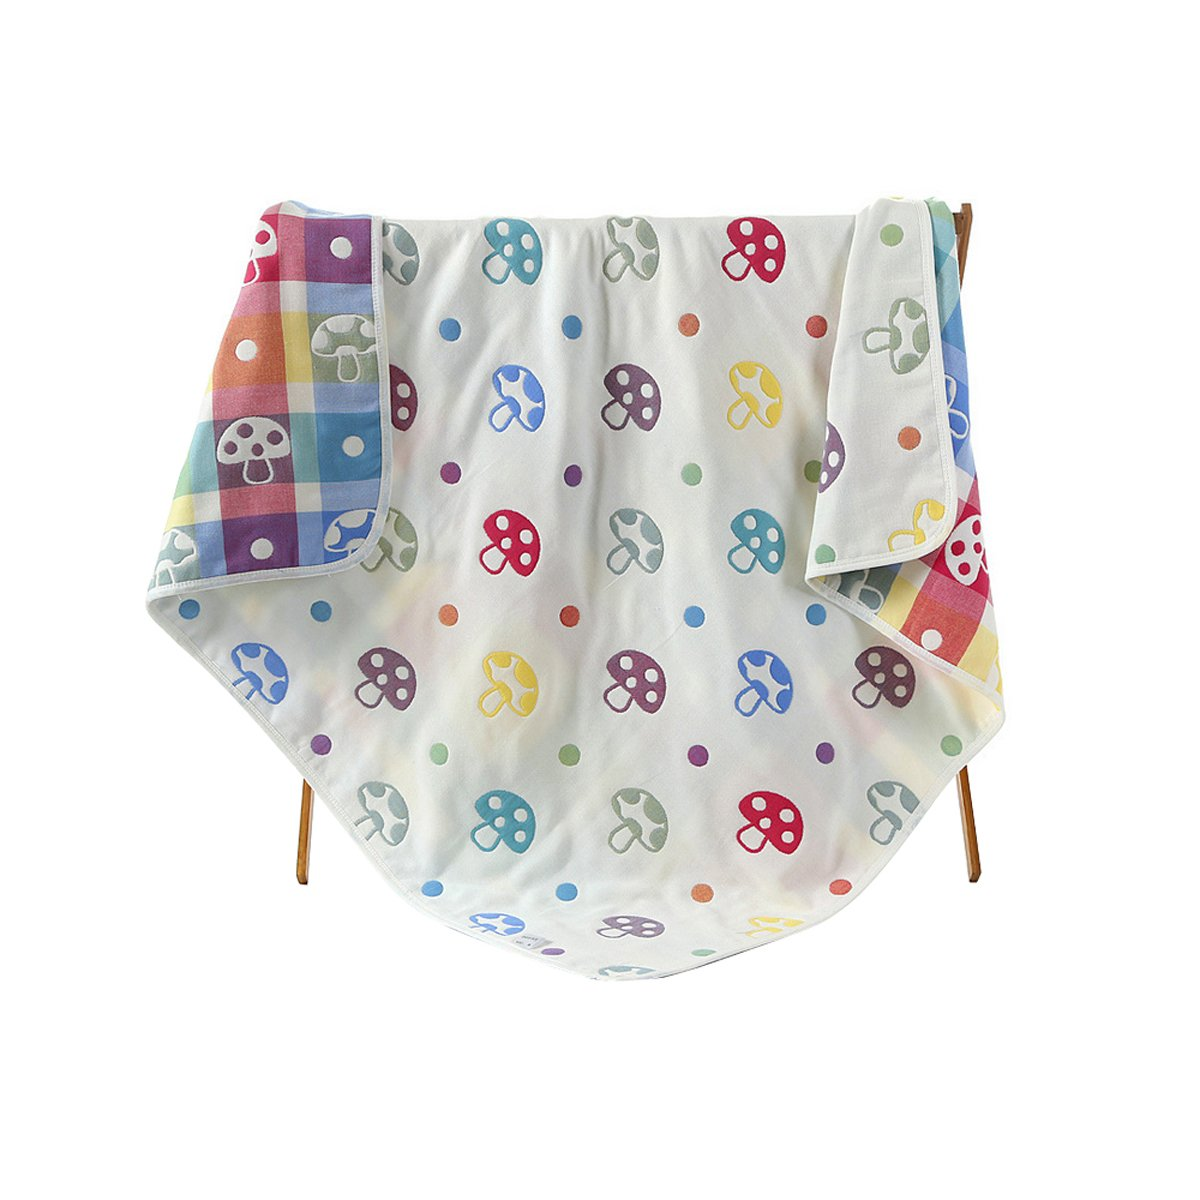 TOLLION 100% Organic Cotton Swaddle Blankets Baby Receiving Blankets- 42-by-42-Inch (Mushroom)